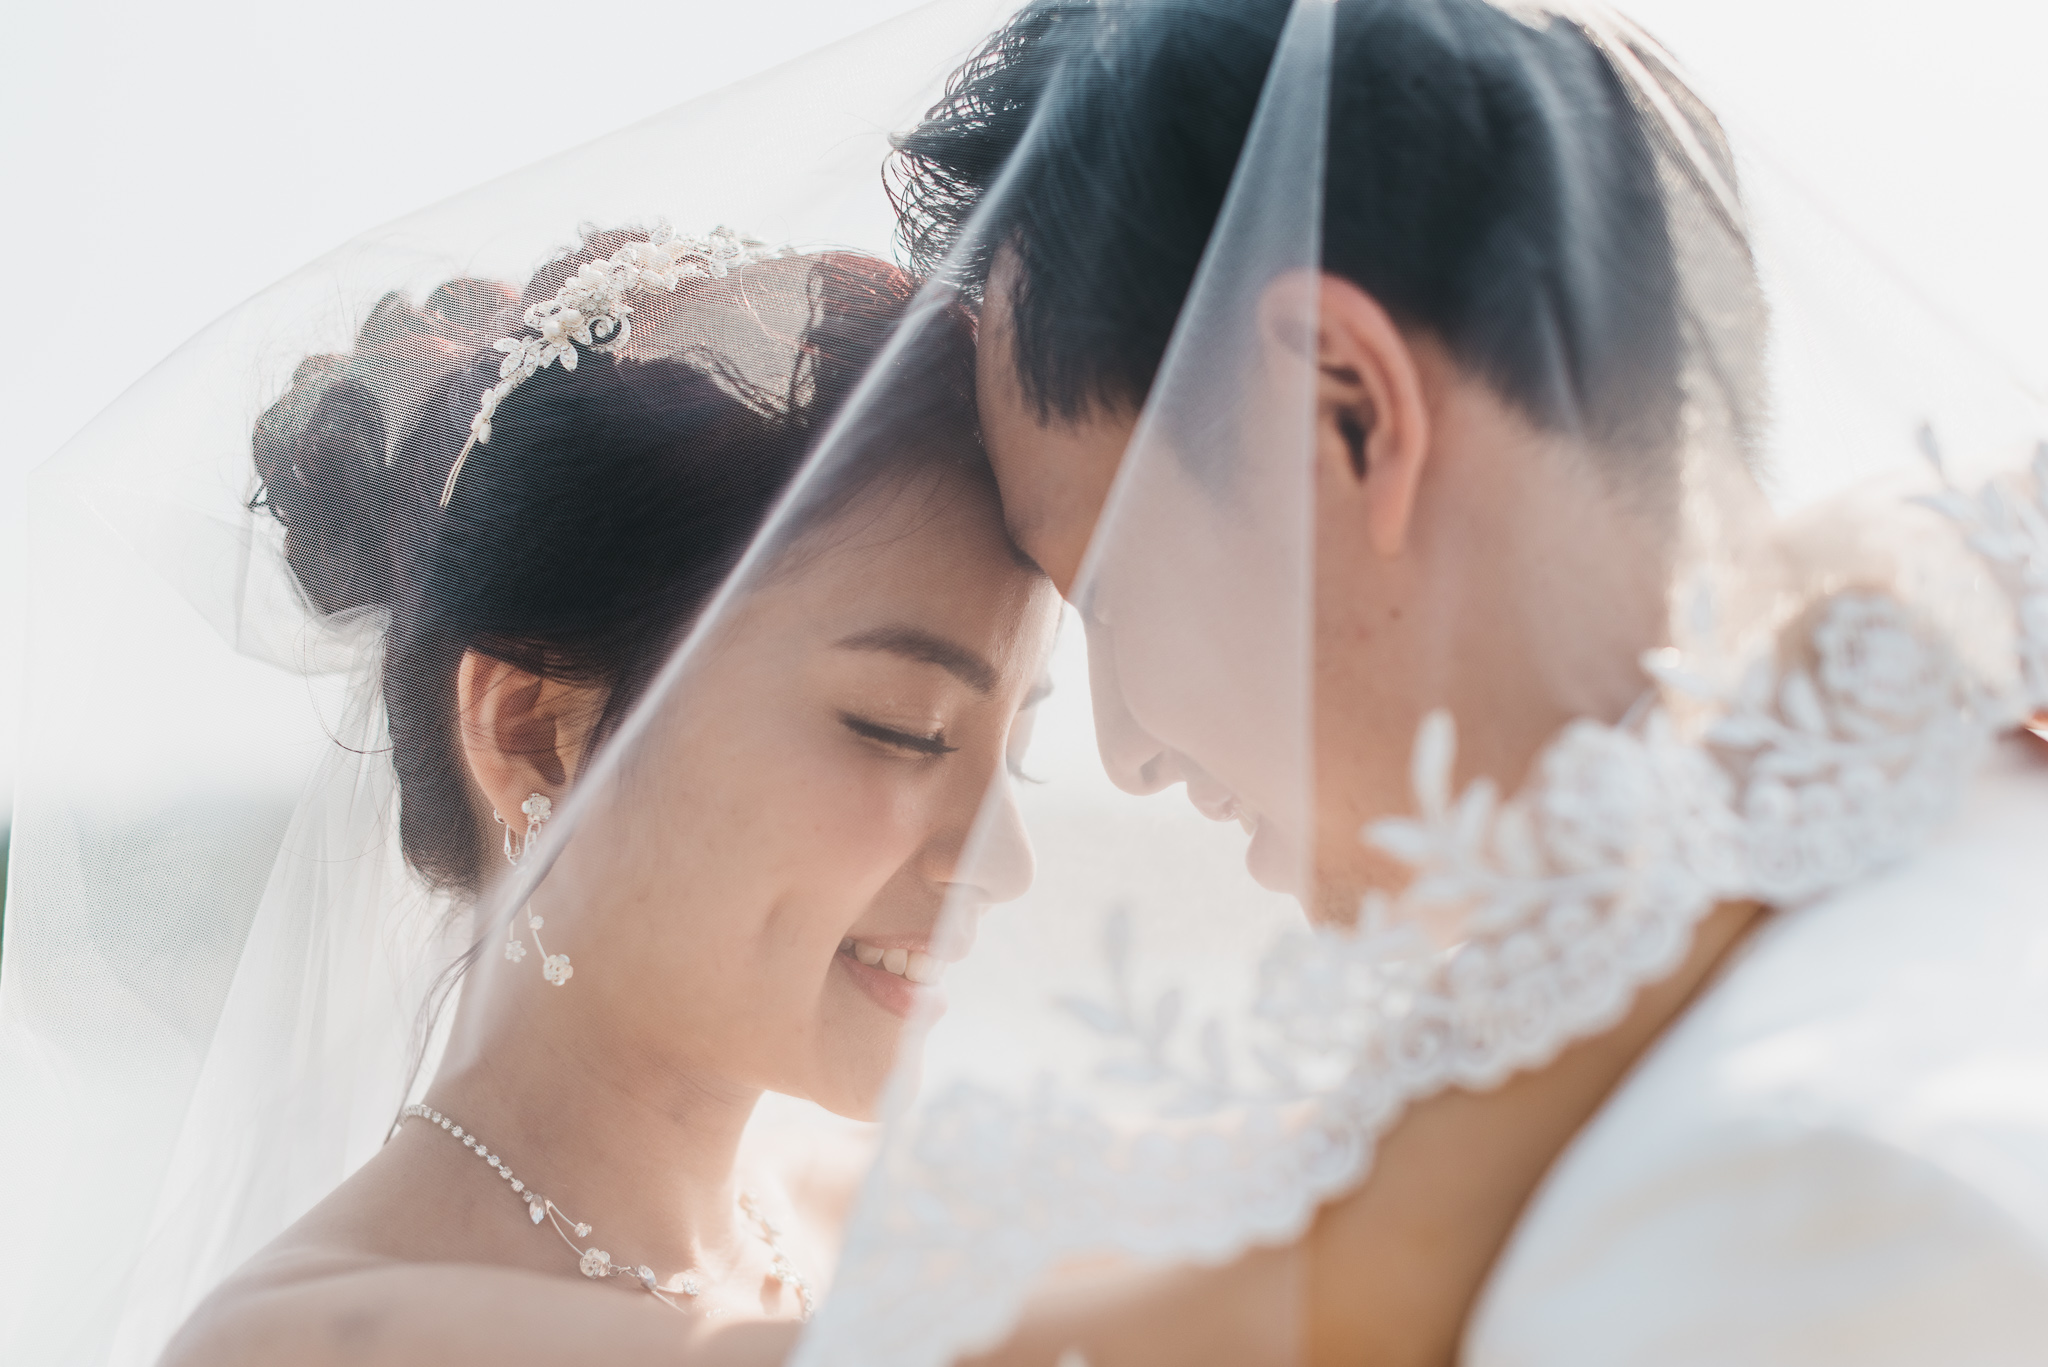 Fiona & Terence Wedding Day Highlights (resized for sharing) - 164.jpg